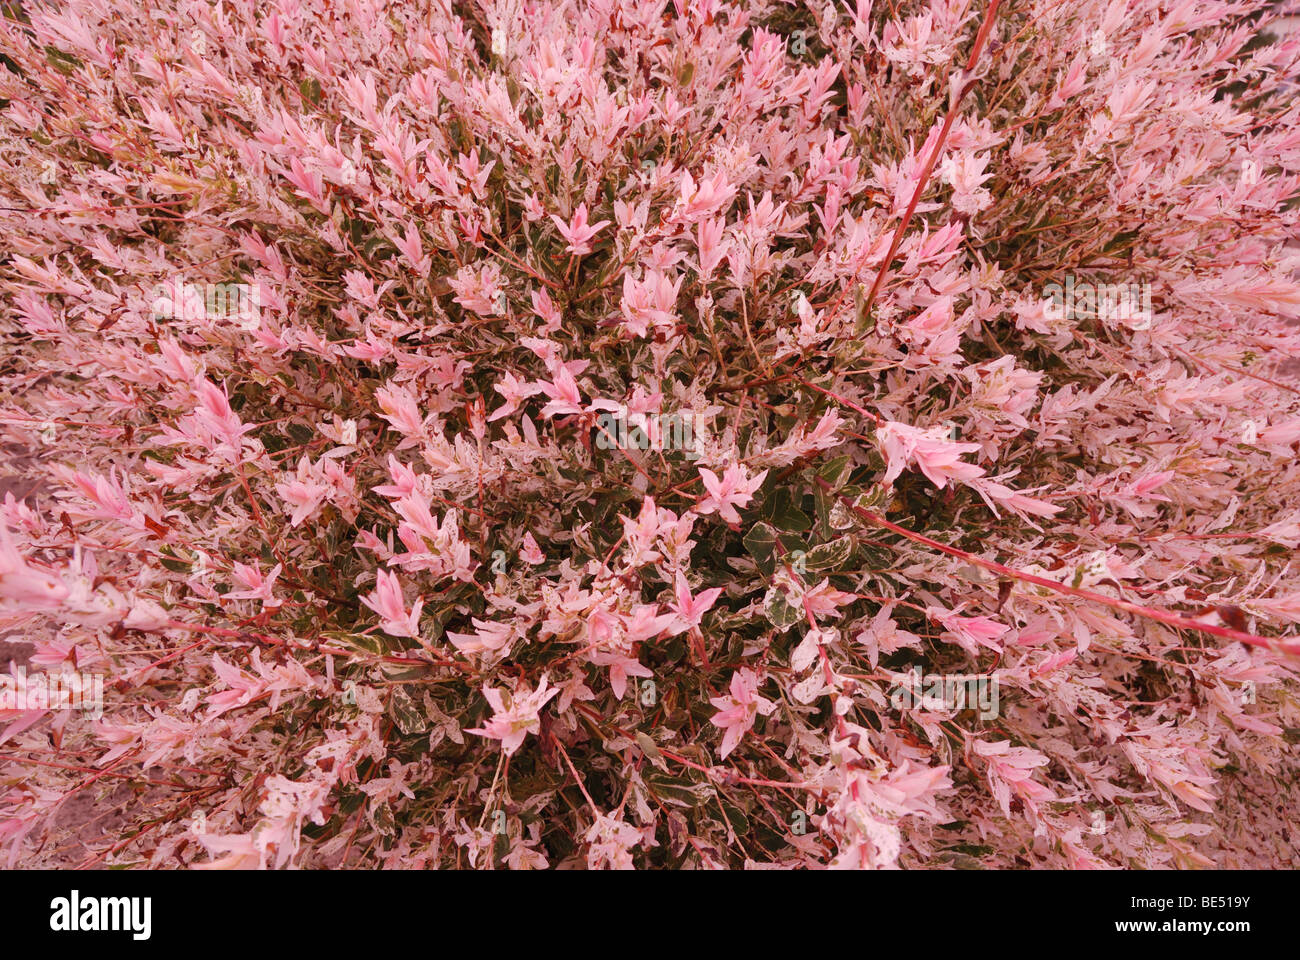 Blooming pink willow tree in summer stock photo 25926375 alamy blooming pink willow tree in summer mightylinksfo